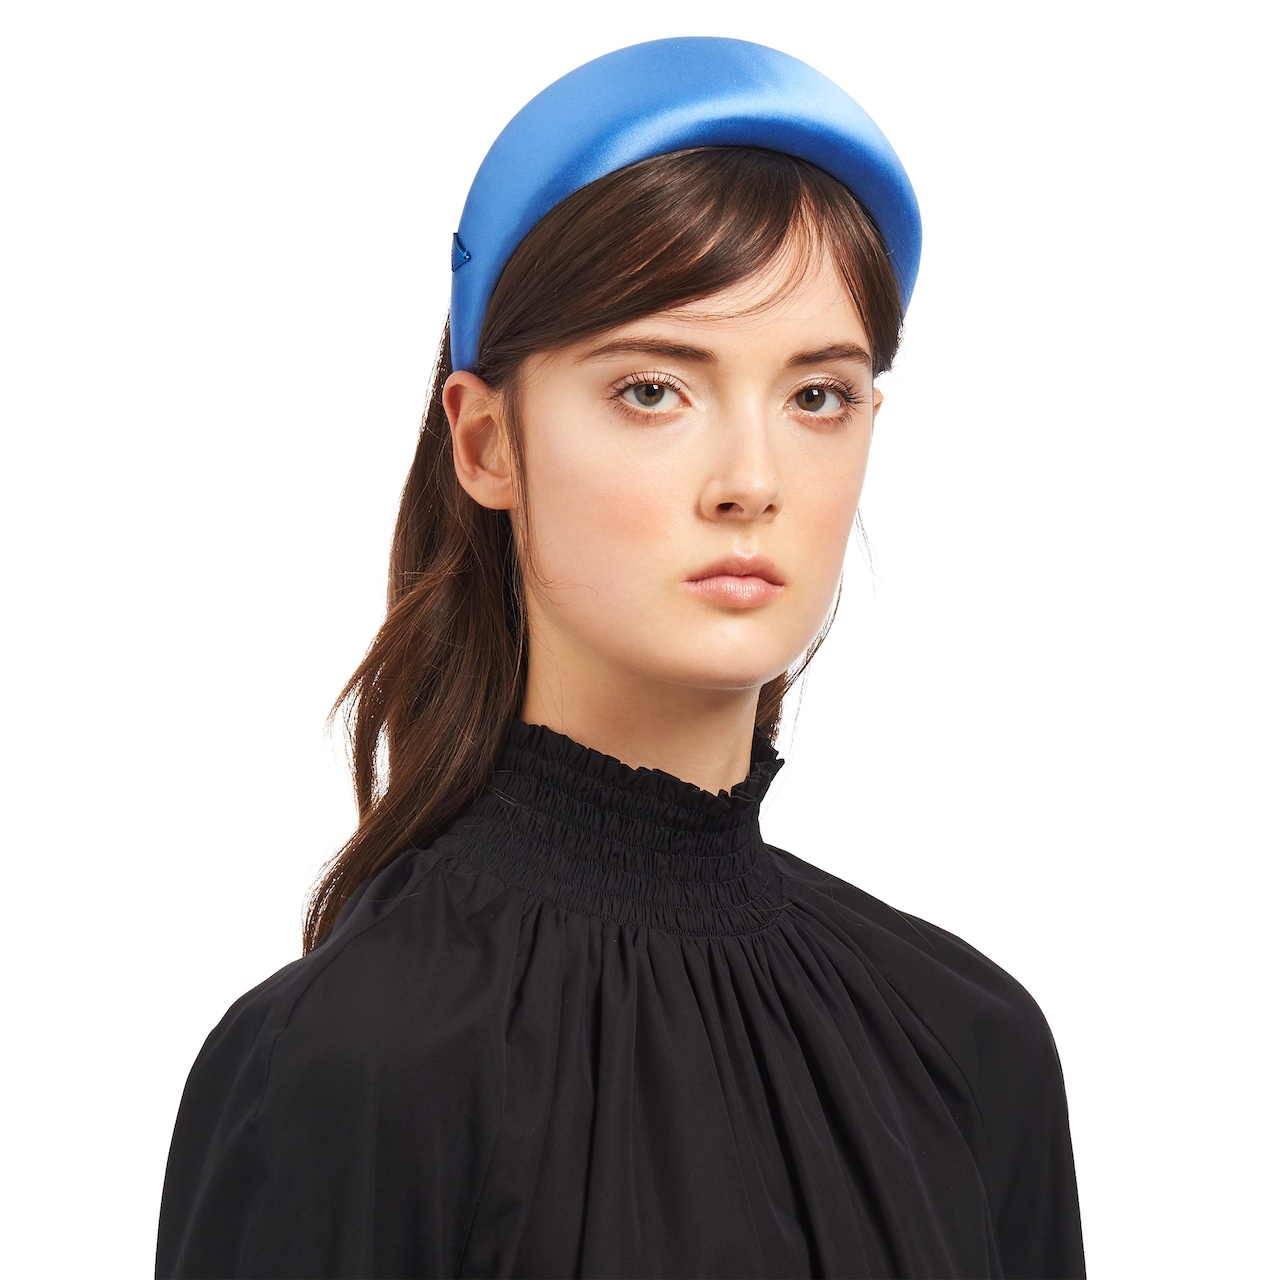 Prada satin headband 2